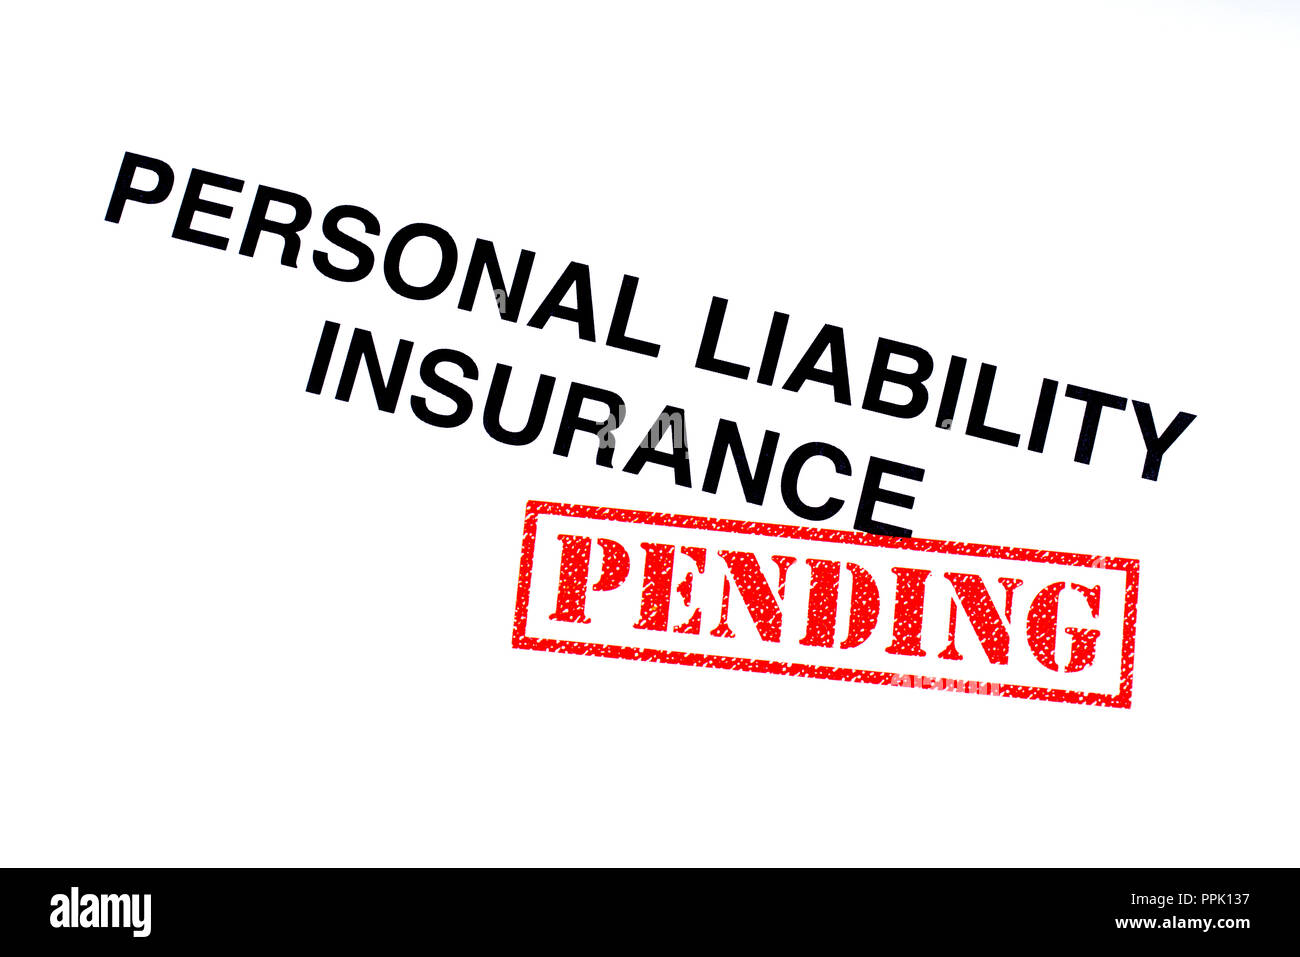 A Personal Liability Insurance heading stamped with a red PENDING rubber stamp. - Stock Image